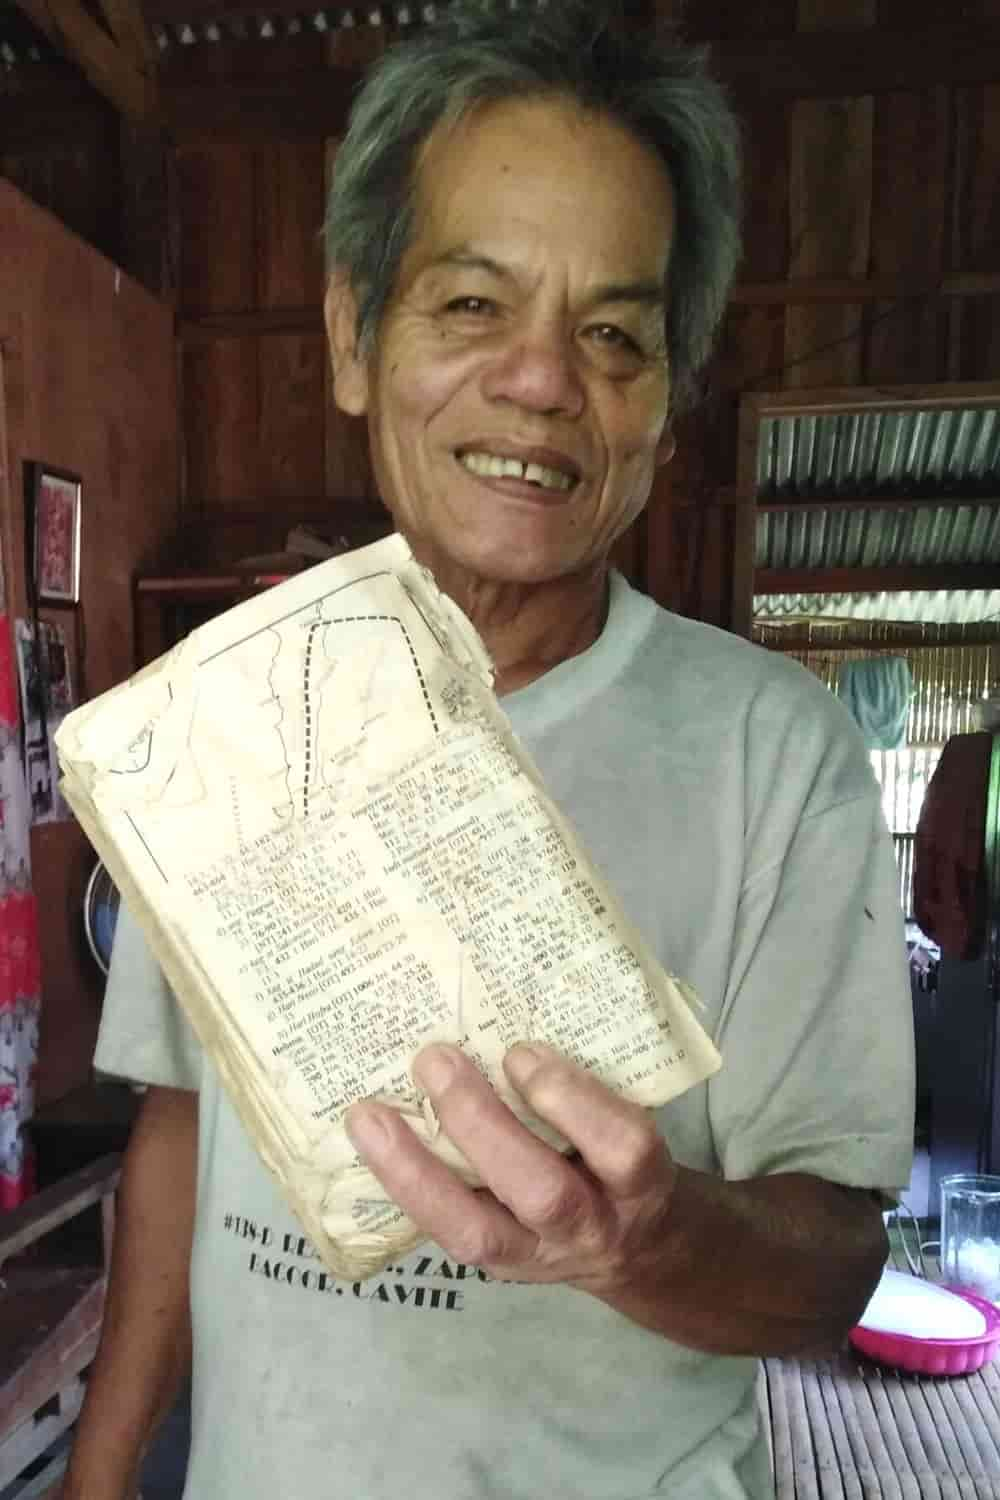 elderly-man-asks-for-bible-2